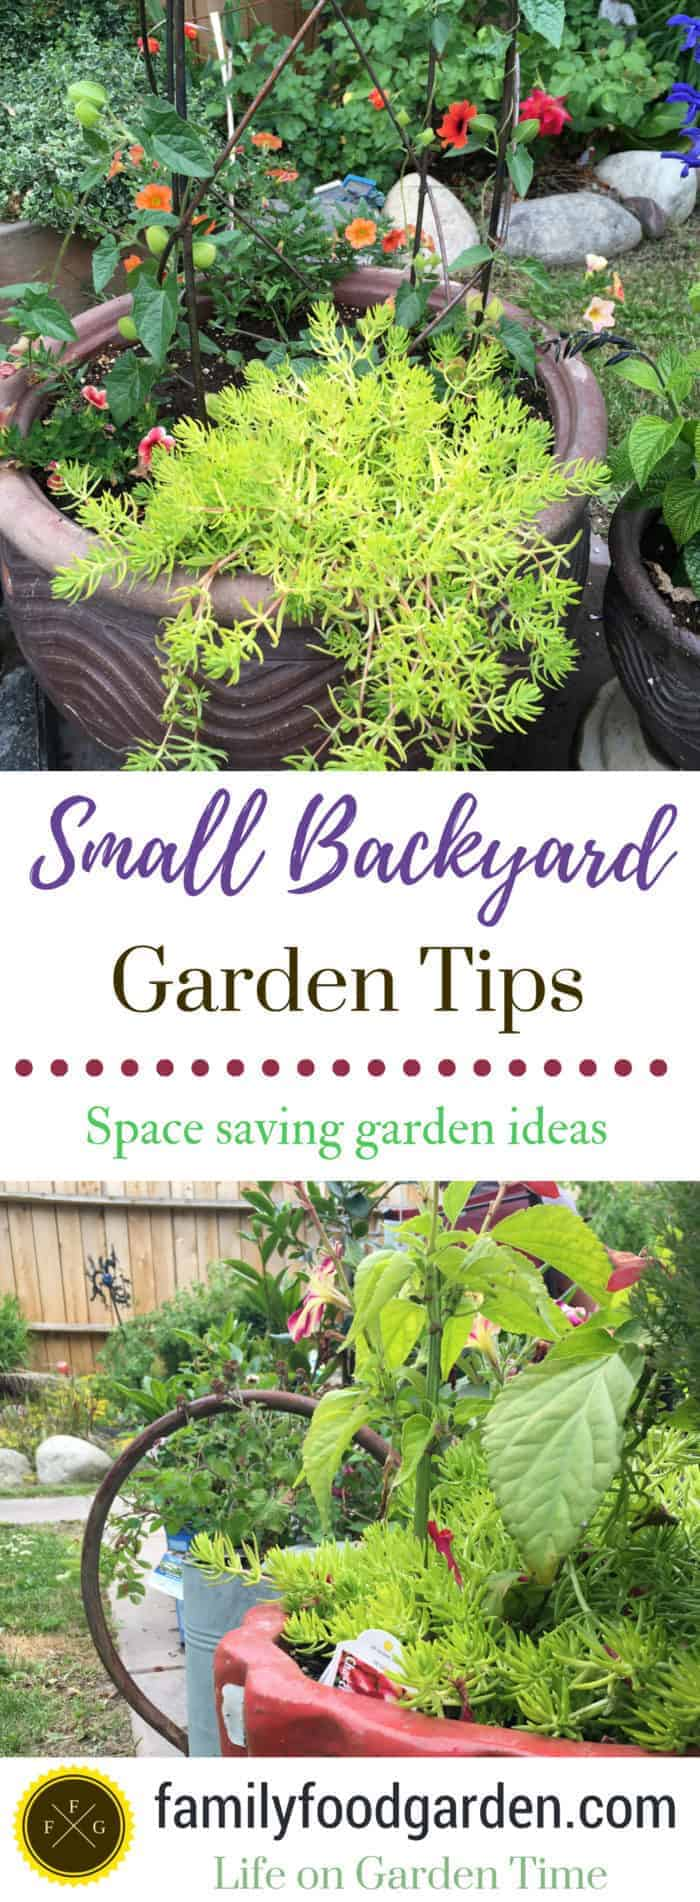 Small Backyard Garden Ideas & Tips ~Family Food Garden